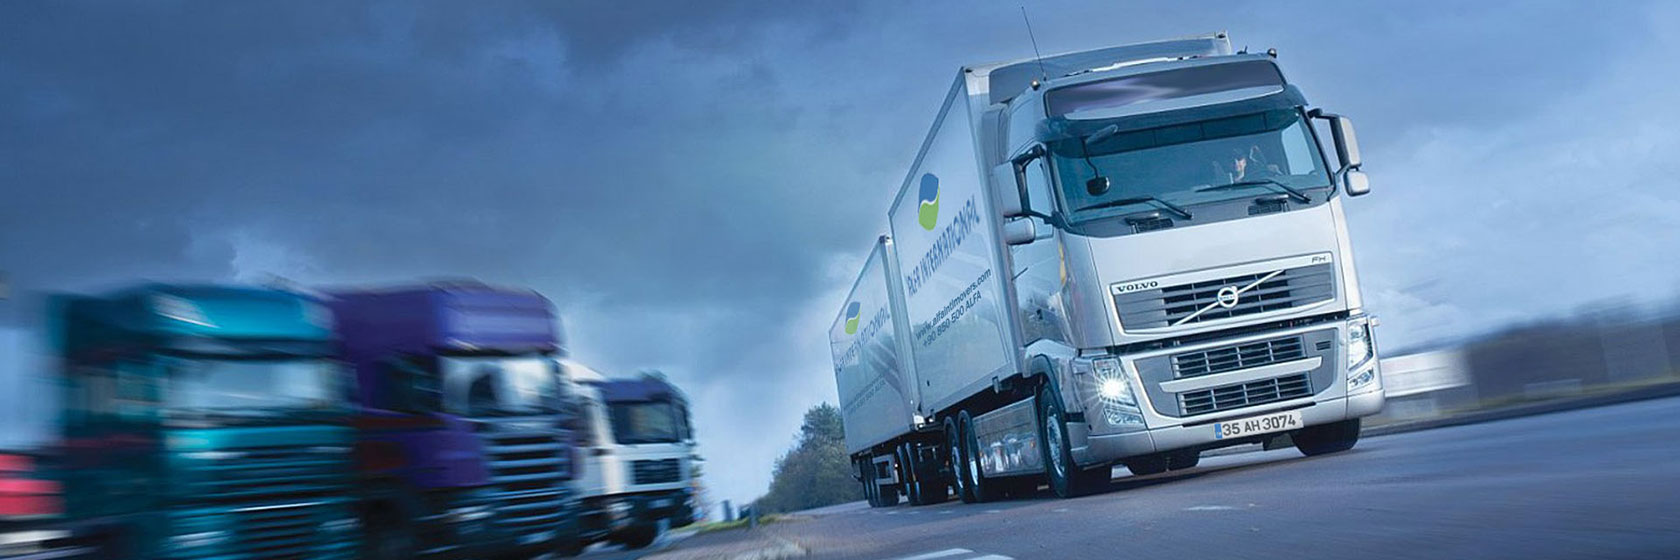 Vehicle Transportation Services in India